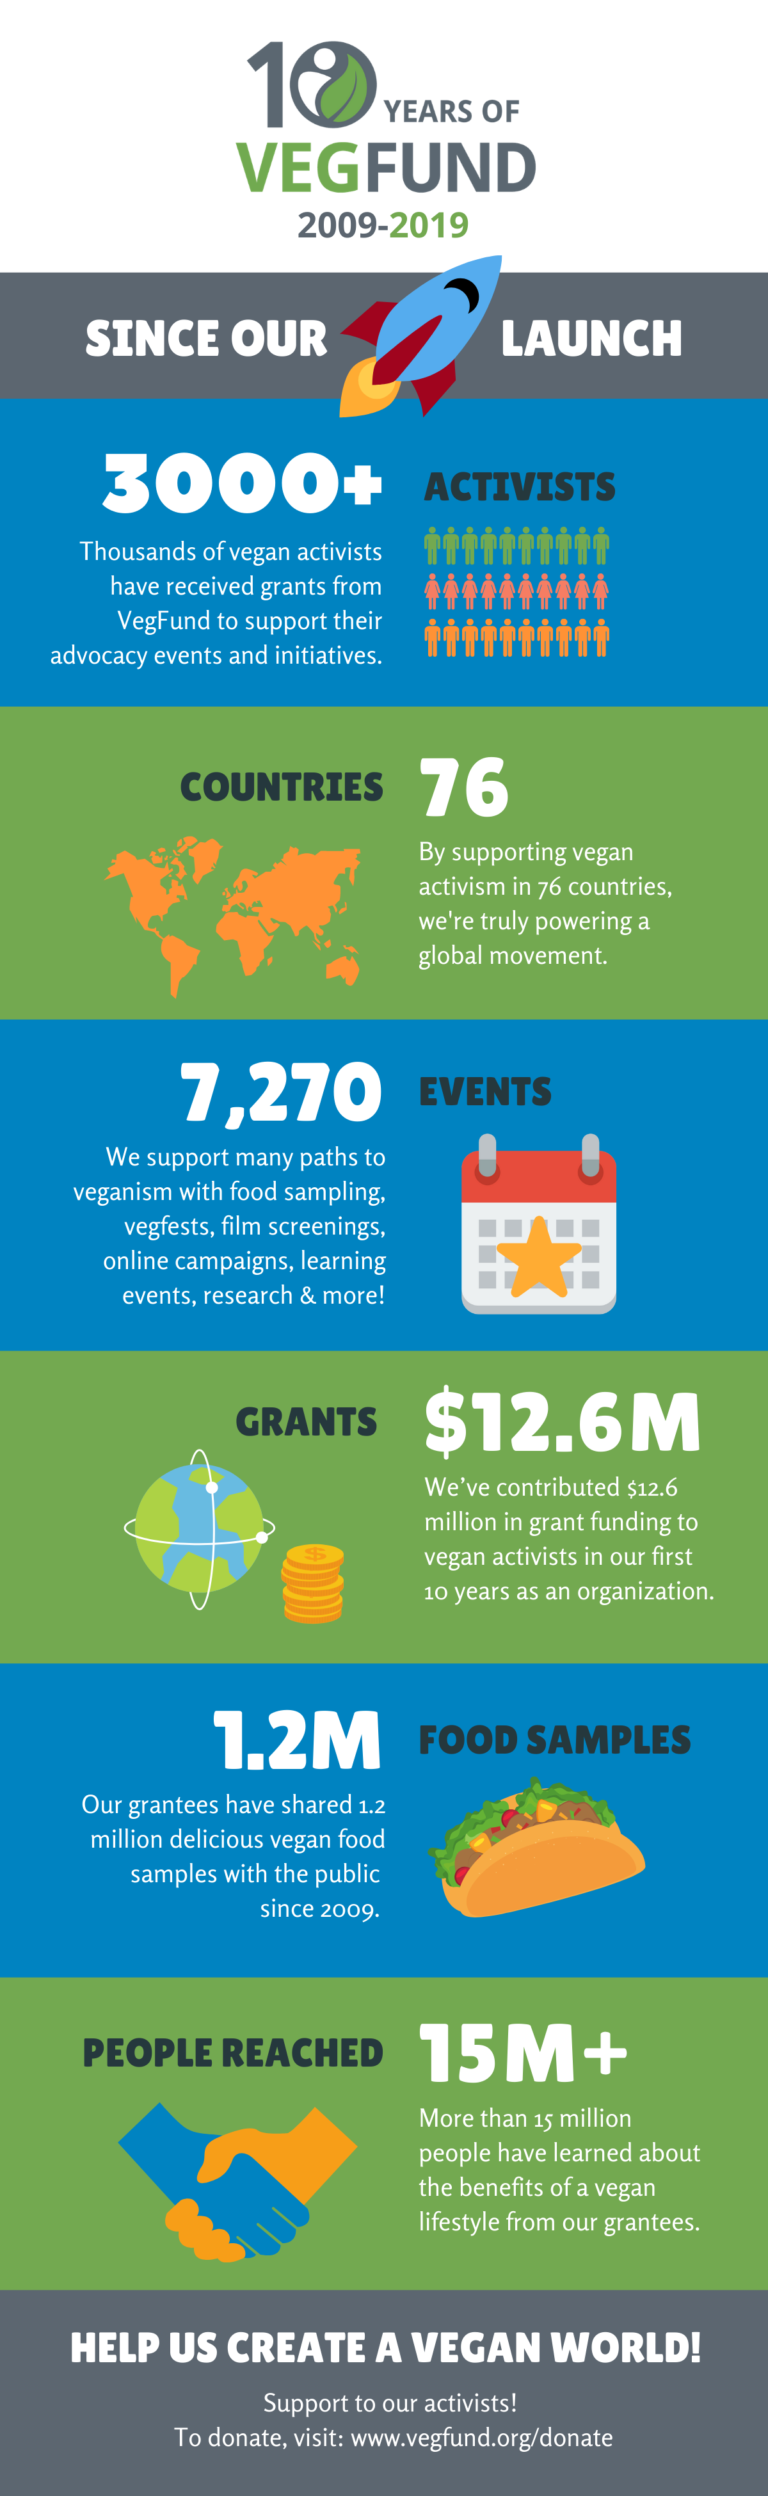 10 Years of VegFund Impact Statistics